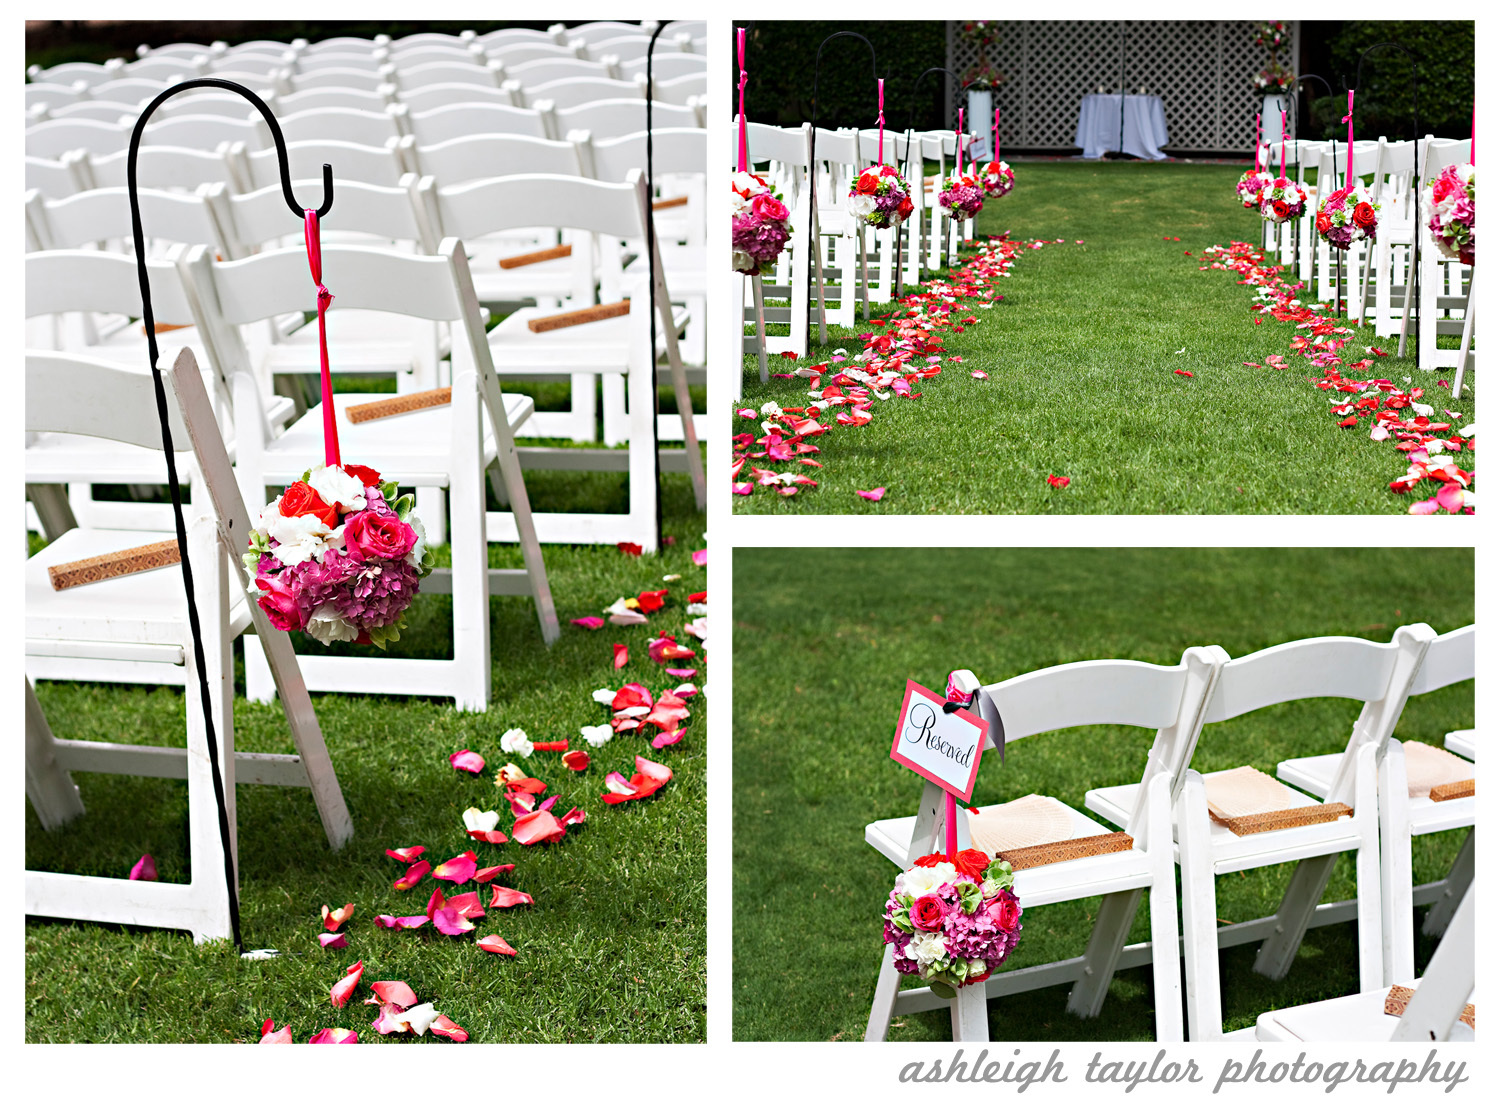 Ceremony, Flowers & Decor, white, pink, red, purple, green, Ceremony Flowers, Flowers, The, Details, Estate, Clarke, Ashleigh taylor photography